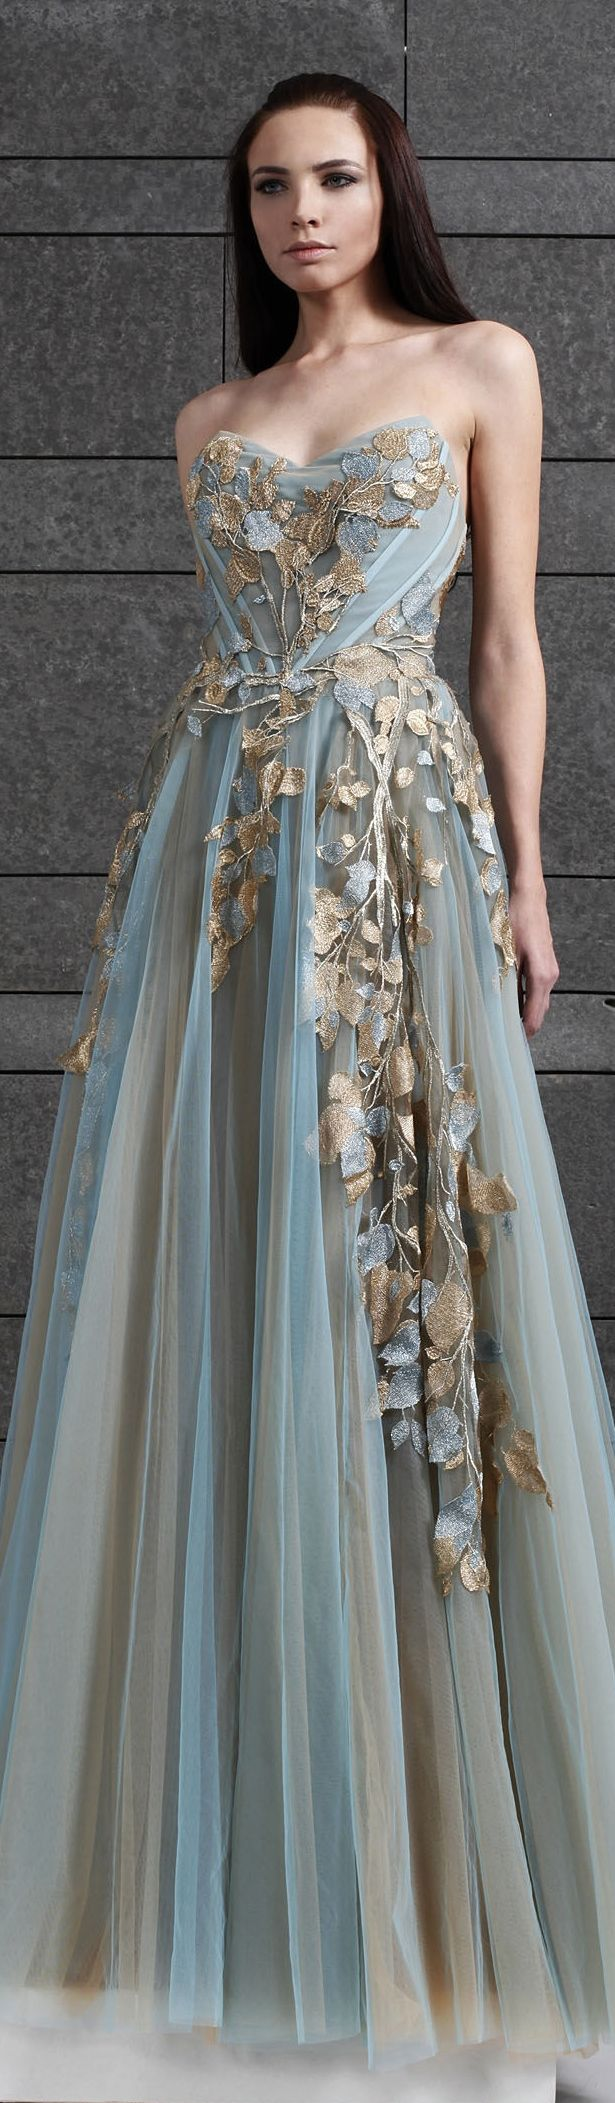 Tony Ward RTW F/W 2014-2015. #blueandgoldpromspirit